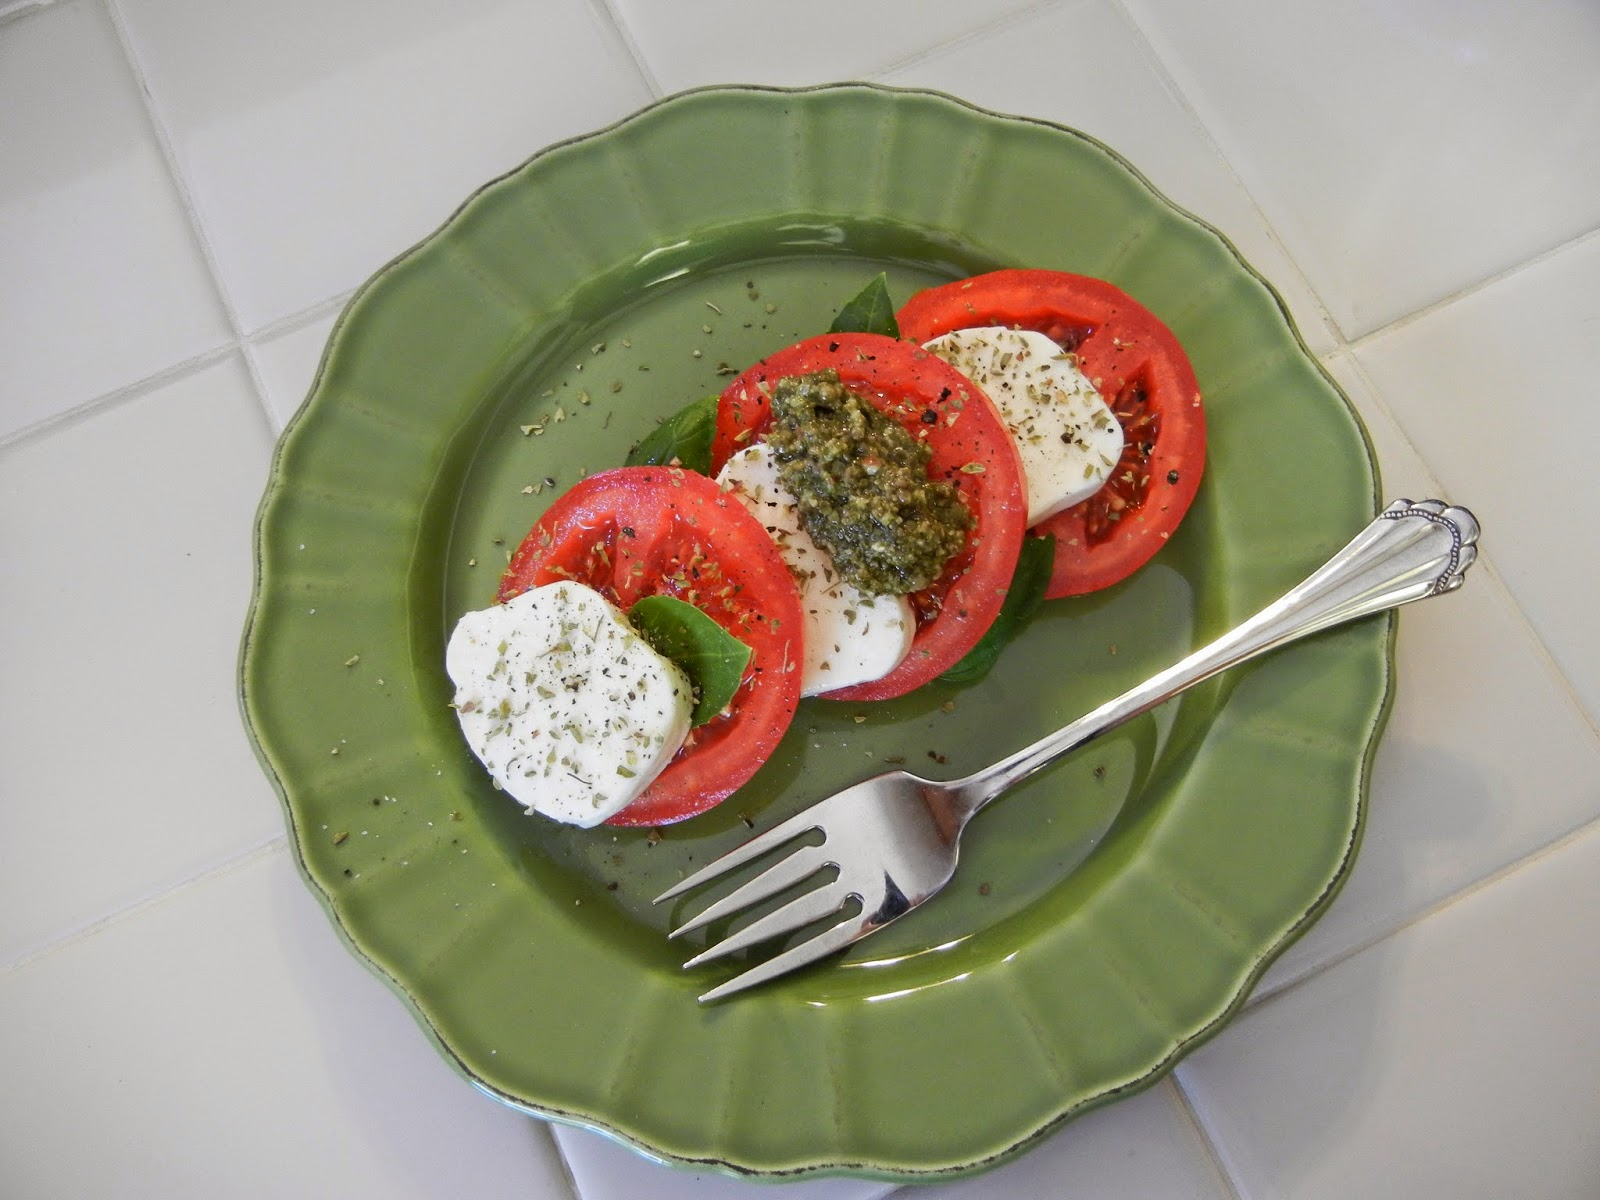 Caprese%2Bwith%2BPesto Weight Loss Recipes Post Weight Loss Surgery Menus: A day in my pouch